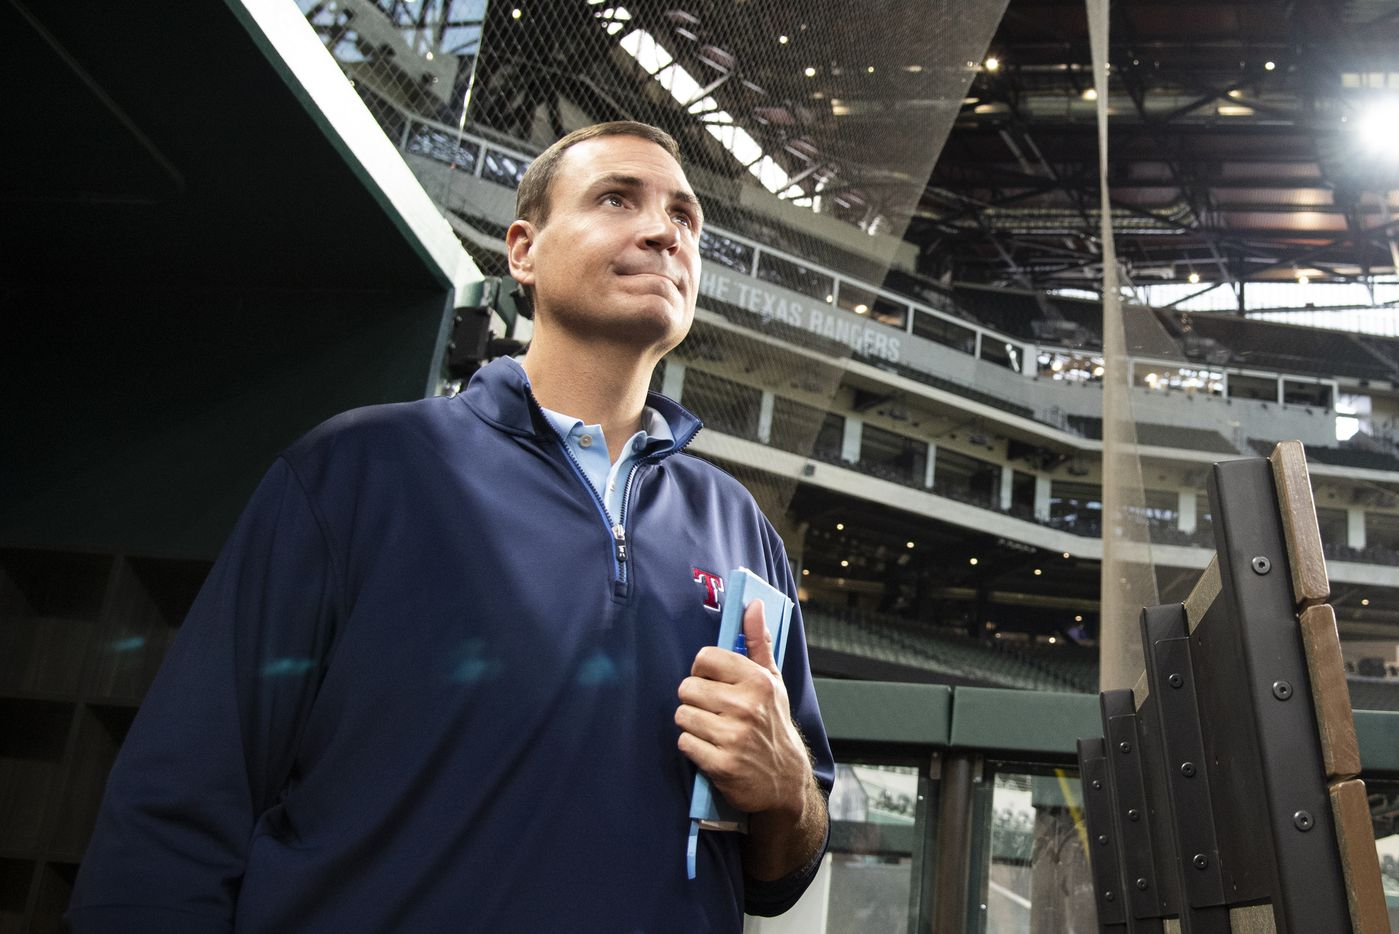 Texas Rangers Executive Vice President and General Manager Chris Young looks on from the dugout during the Texas RangersÕ end of the year press conference at Globe Life Field on Wednesday, October 6, 2021 in Arlington, Texas. (Emil Lippe/Special Contributor)